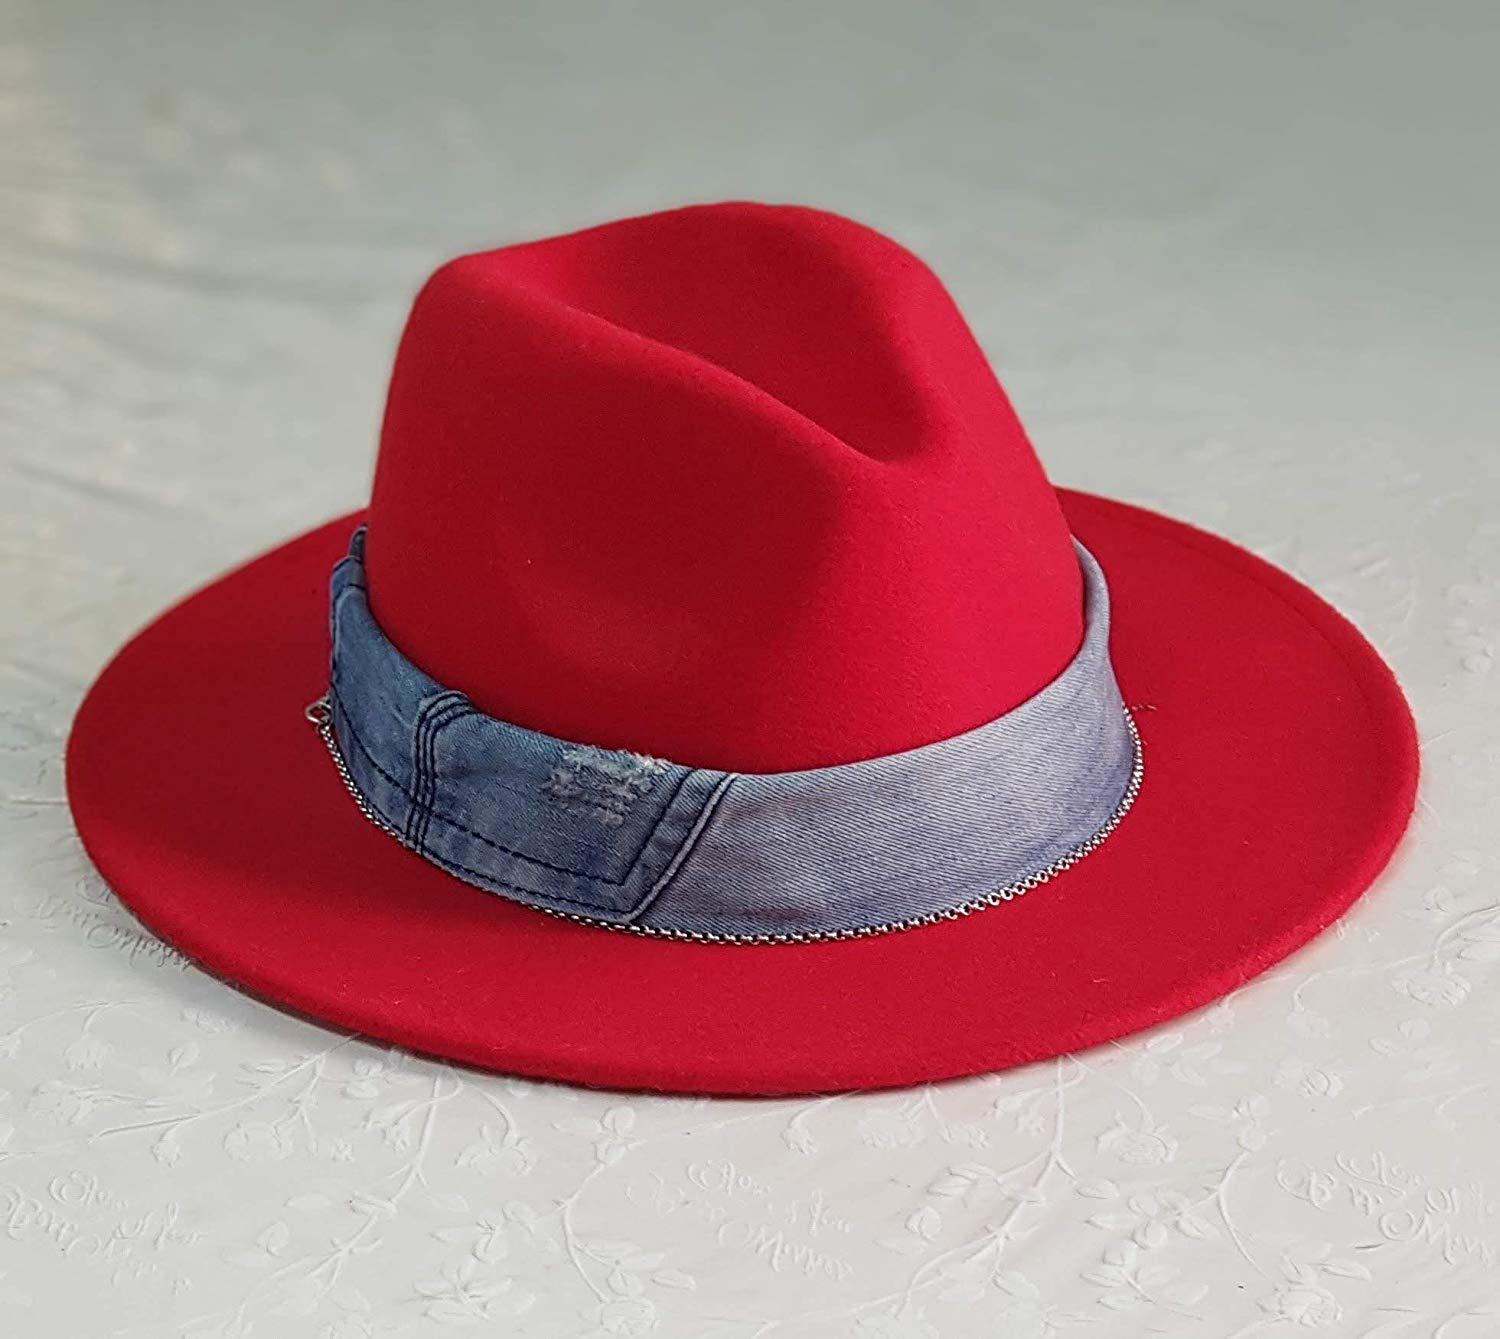 19531ecb4ee88 Get Quotations · Handmade Red fedora hats for women